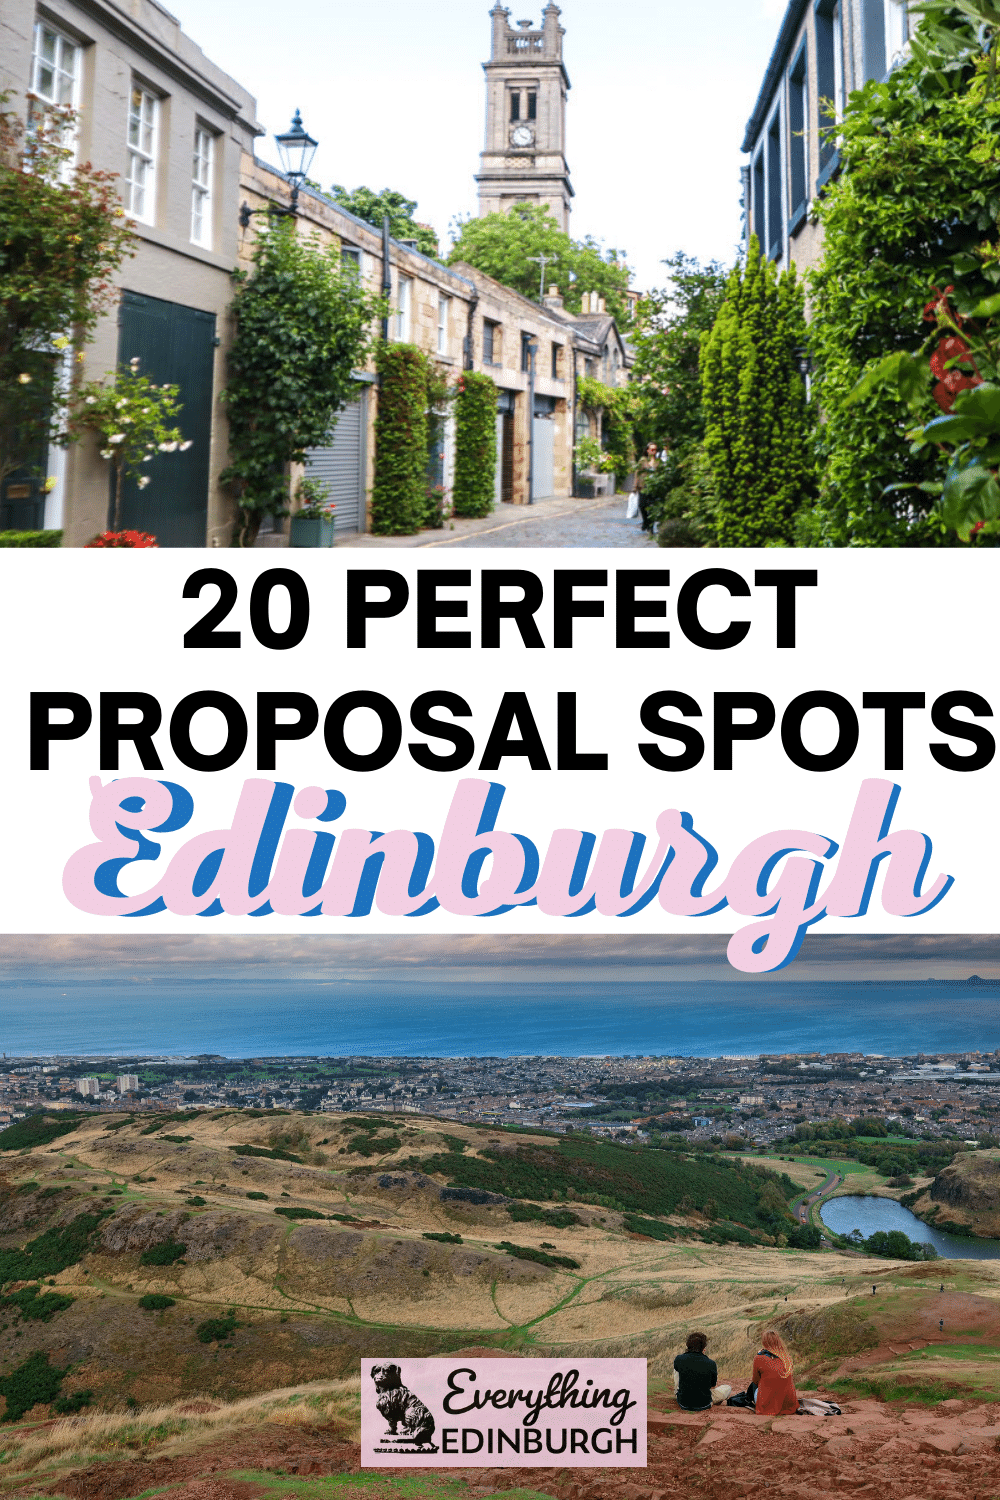 Hey lover! Are you looking for the perfect place to propose in Edinburgh? This guide shares 20 popular and secret proposal locations to help take the stress out of saying YES! Local advice about proposing in Edinburgh included.